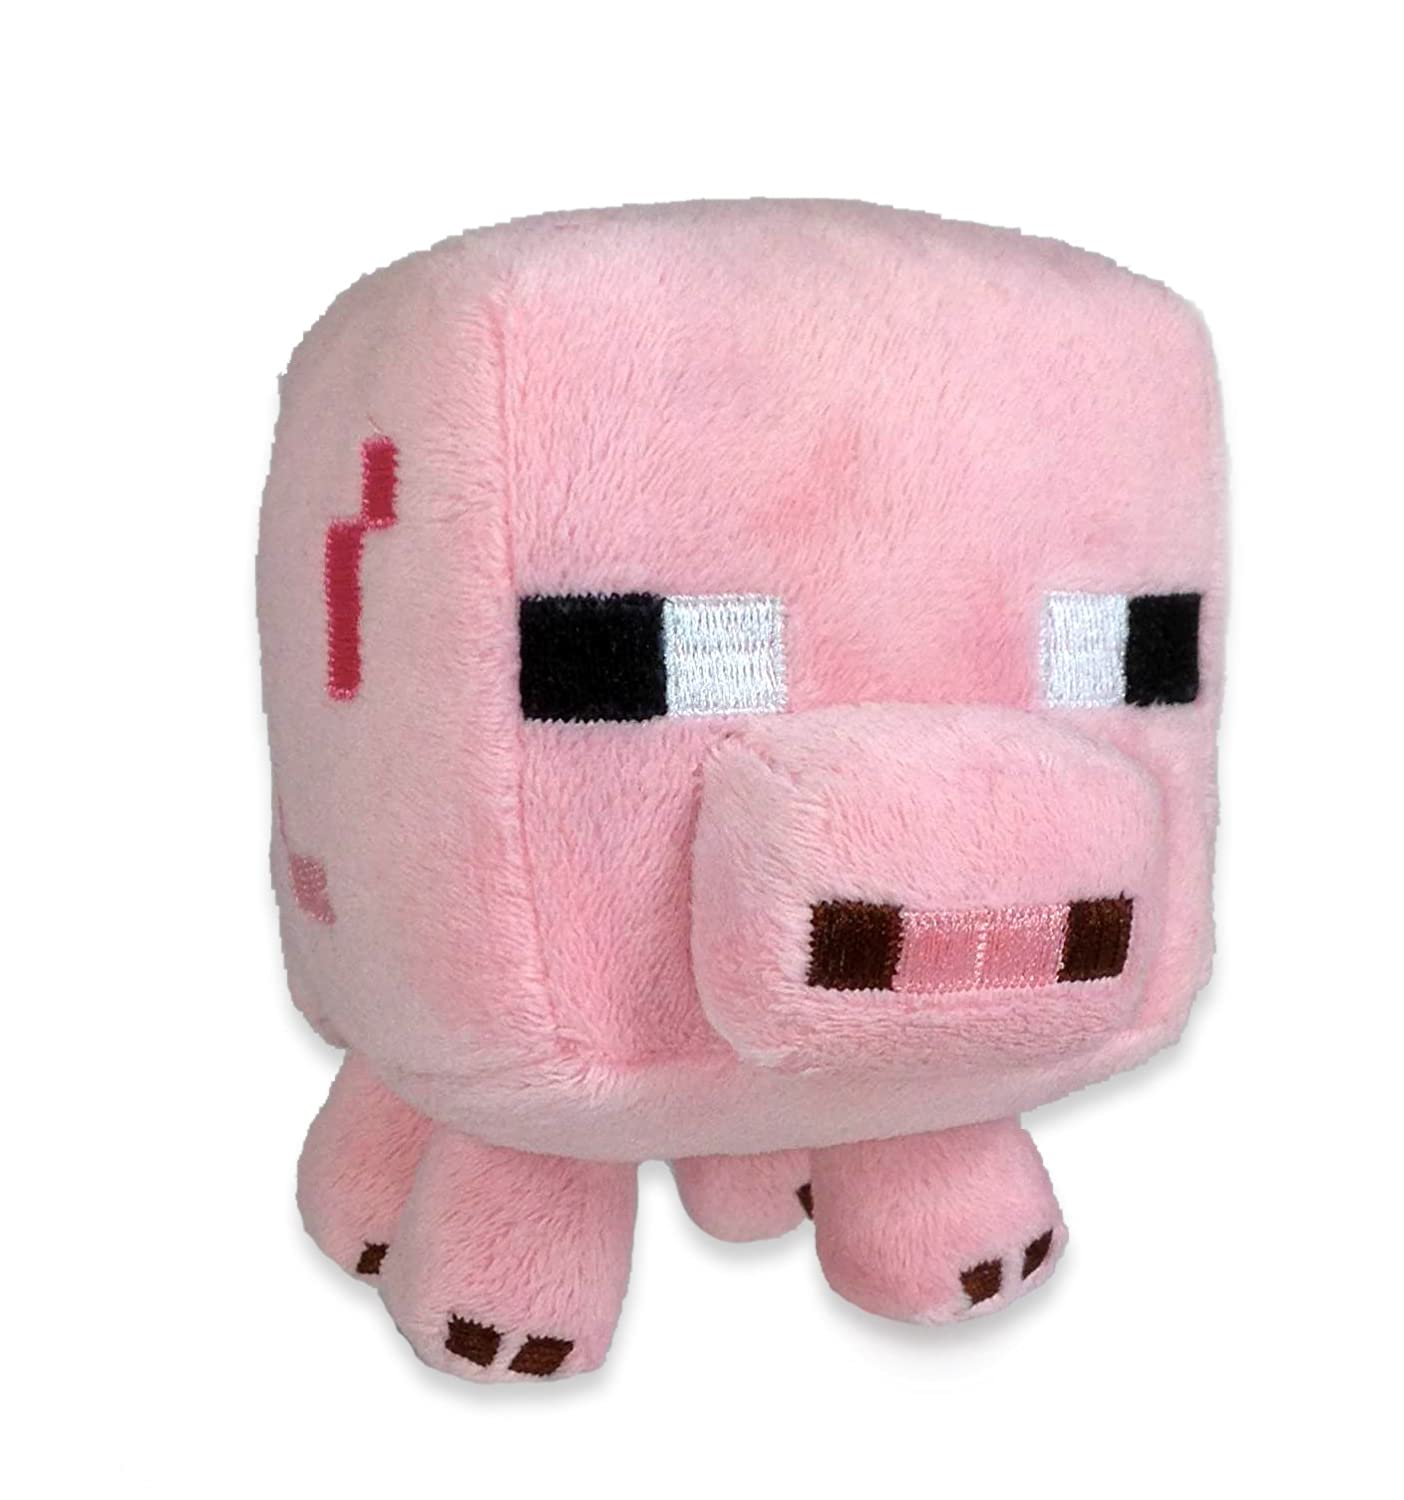 Minecraft 7-inch Baby Pig Soft Toy Character Options 16526